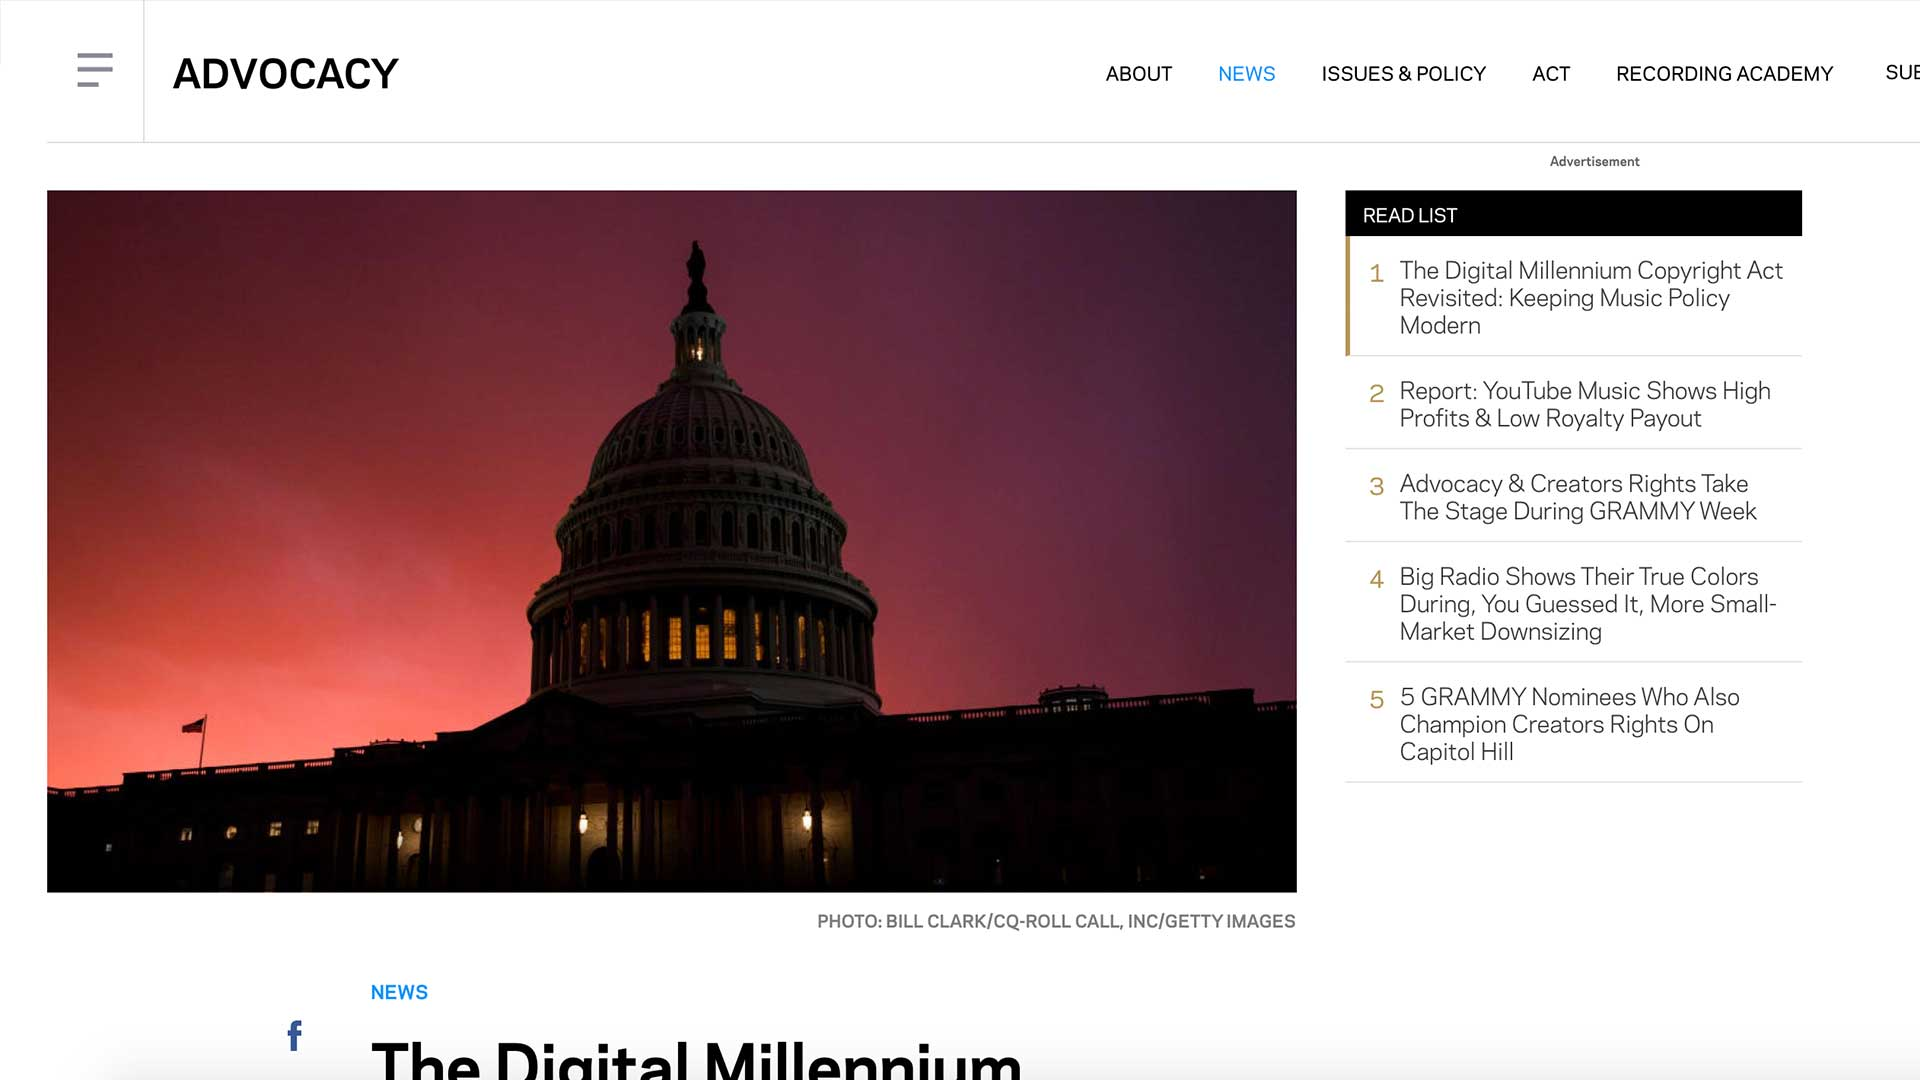 Fairness Rocks News The Digital Millennium Copyright Act Revisited: Keeping Music Policy Modern